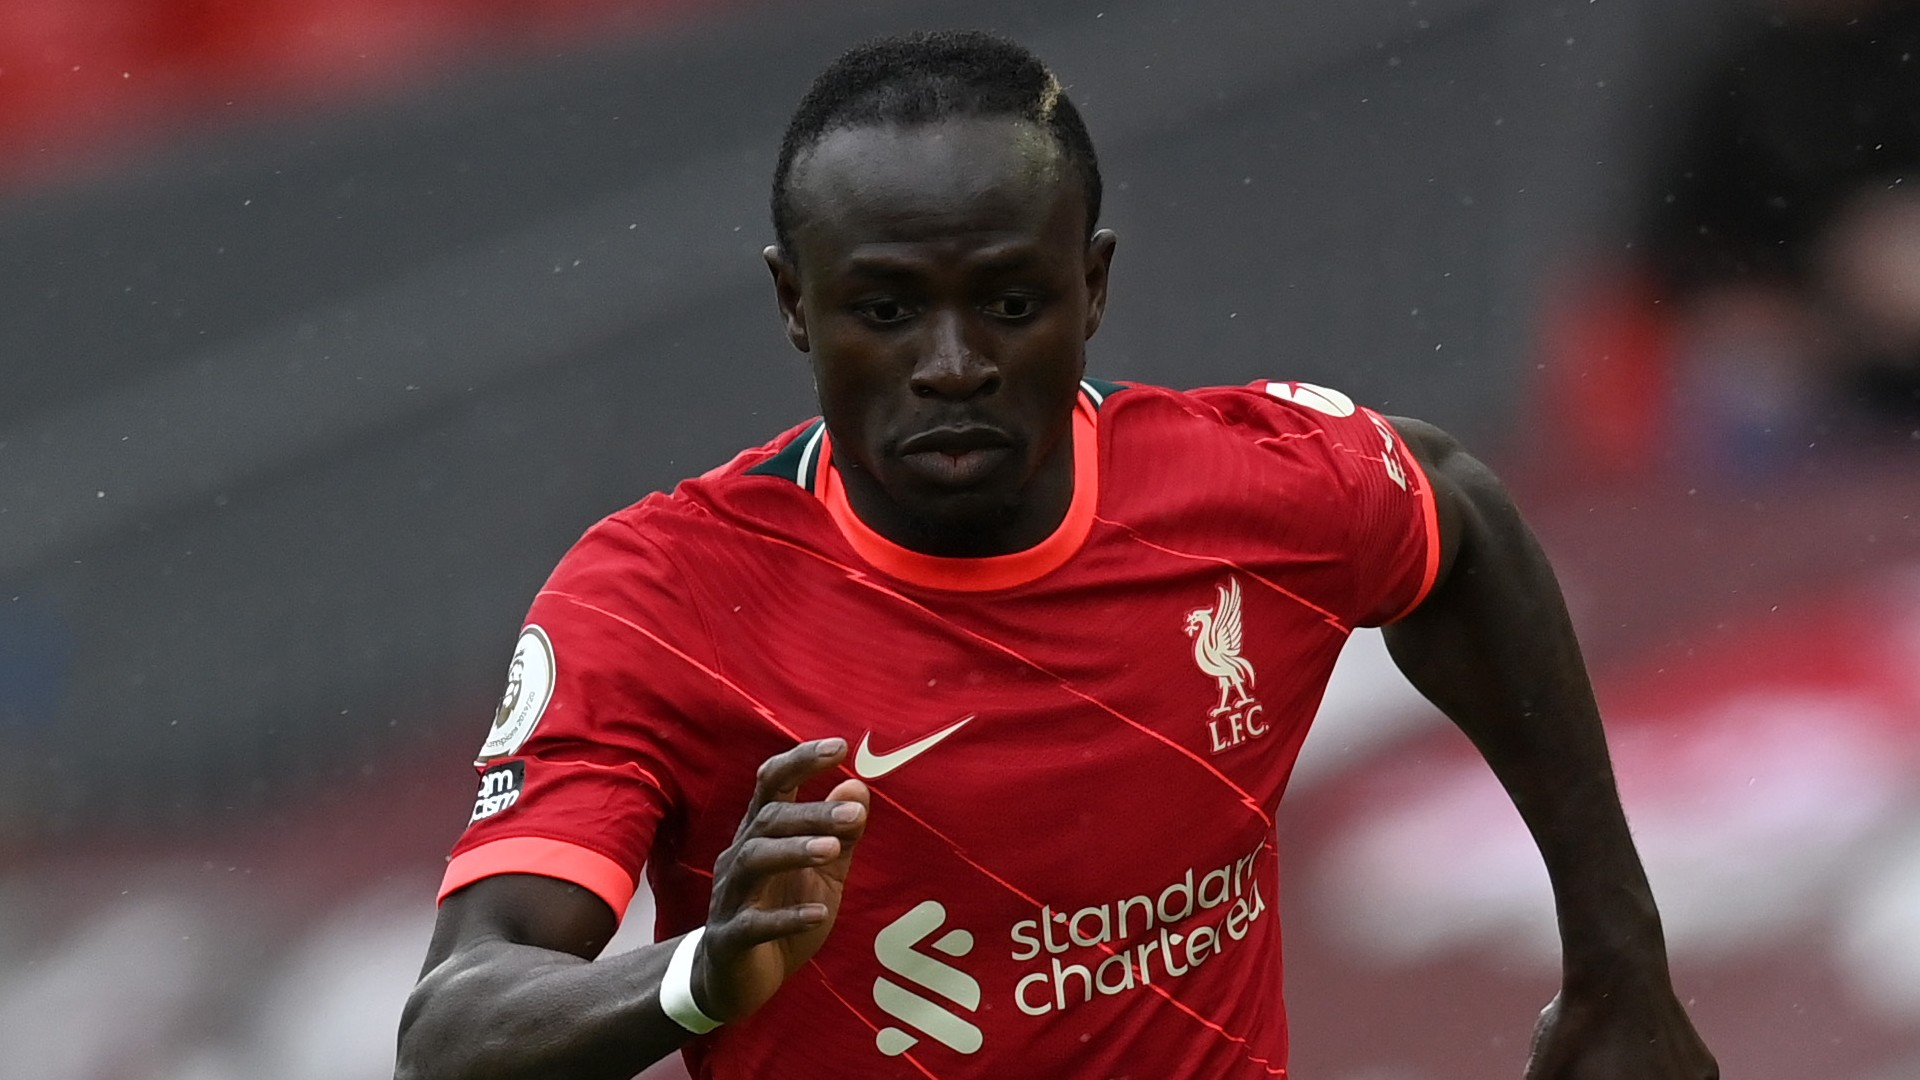 'Celebrating with Liverpool teammates not enough' – Mane